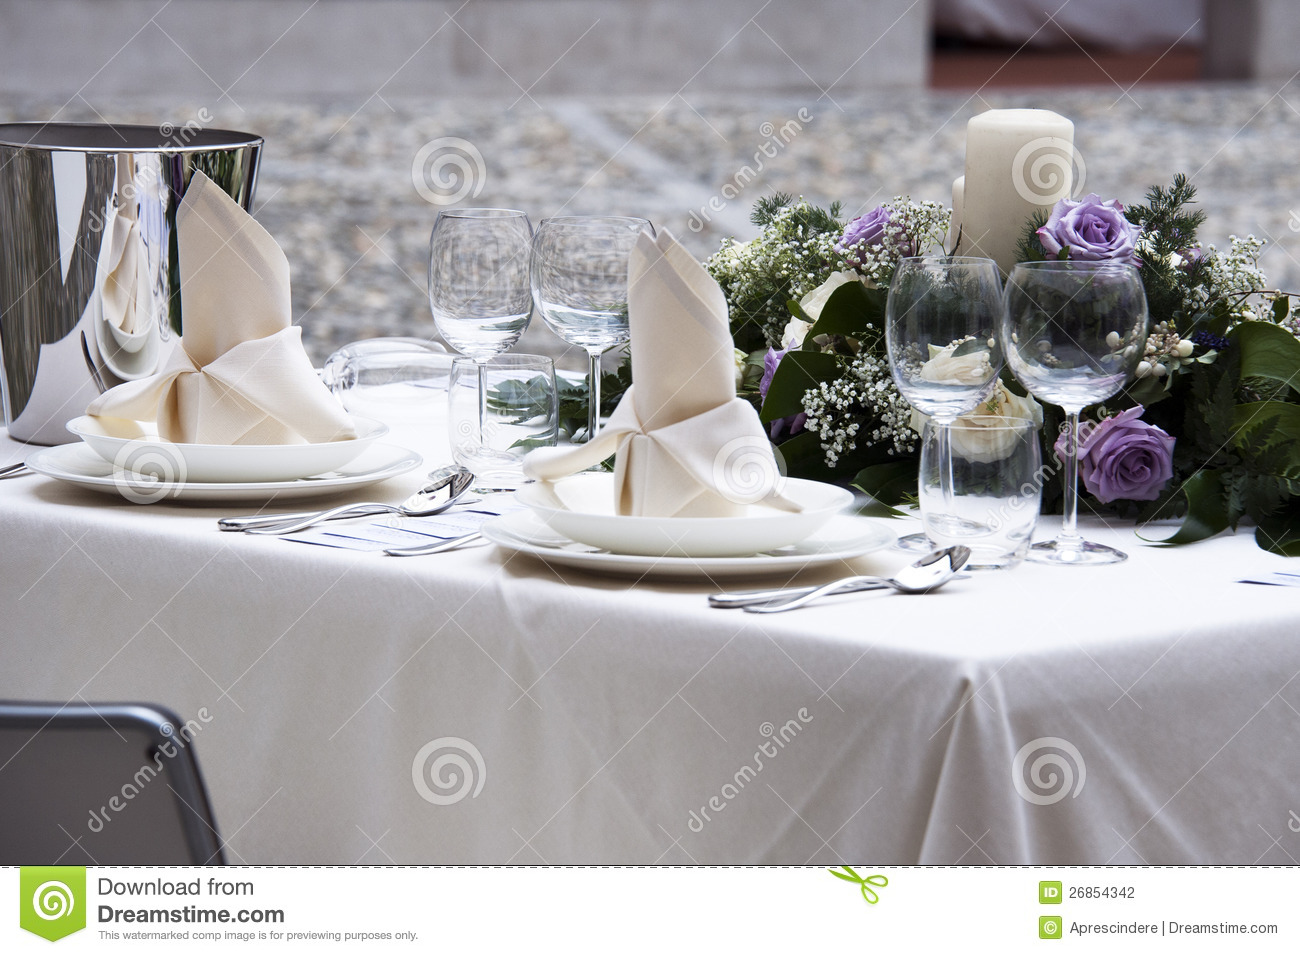 Table For 2 : Romantic table setting stock photo image of glass diner